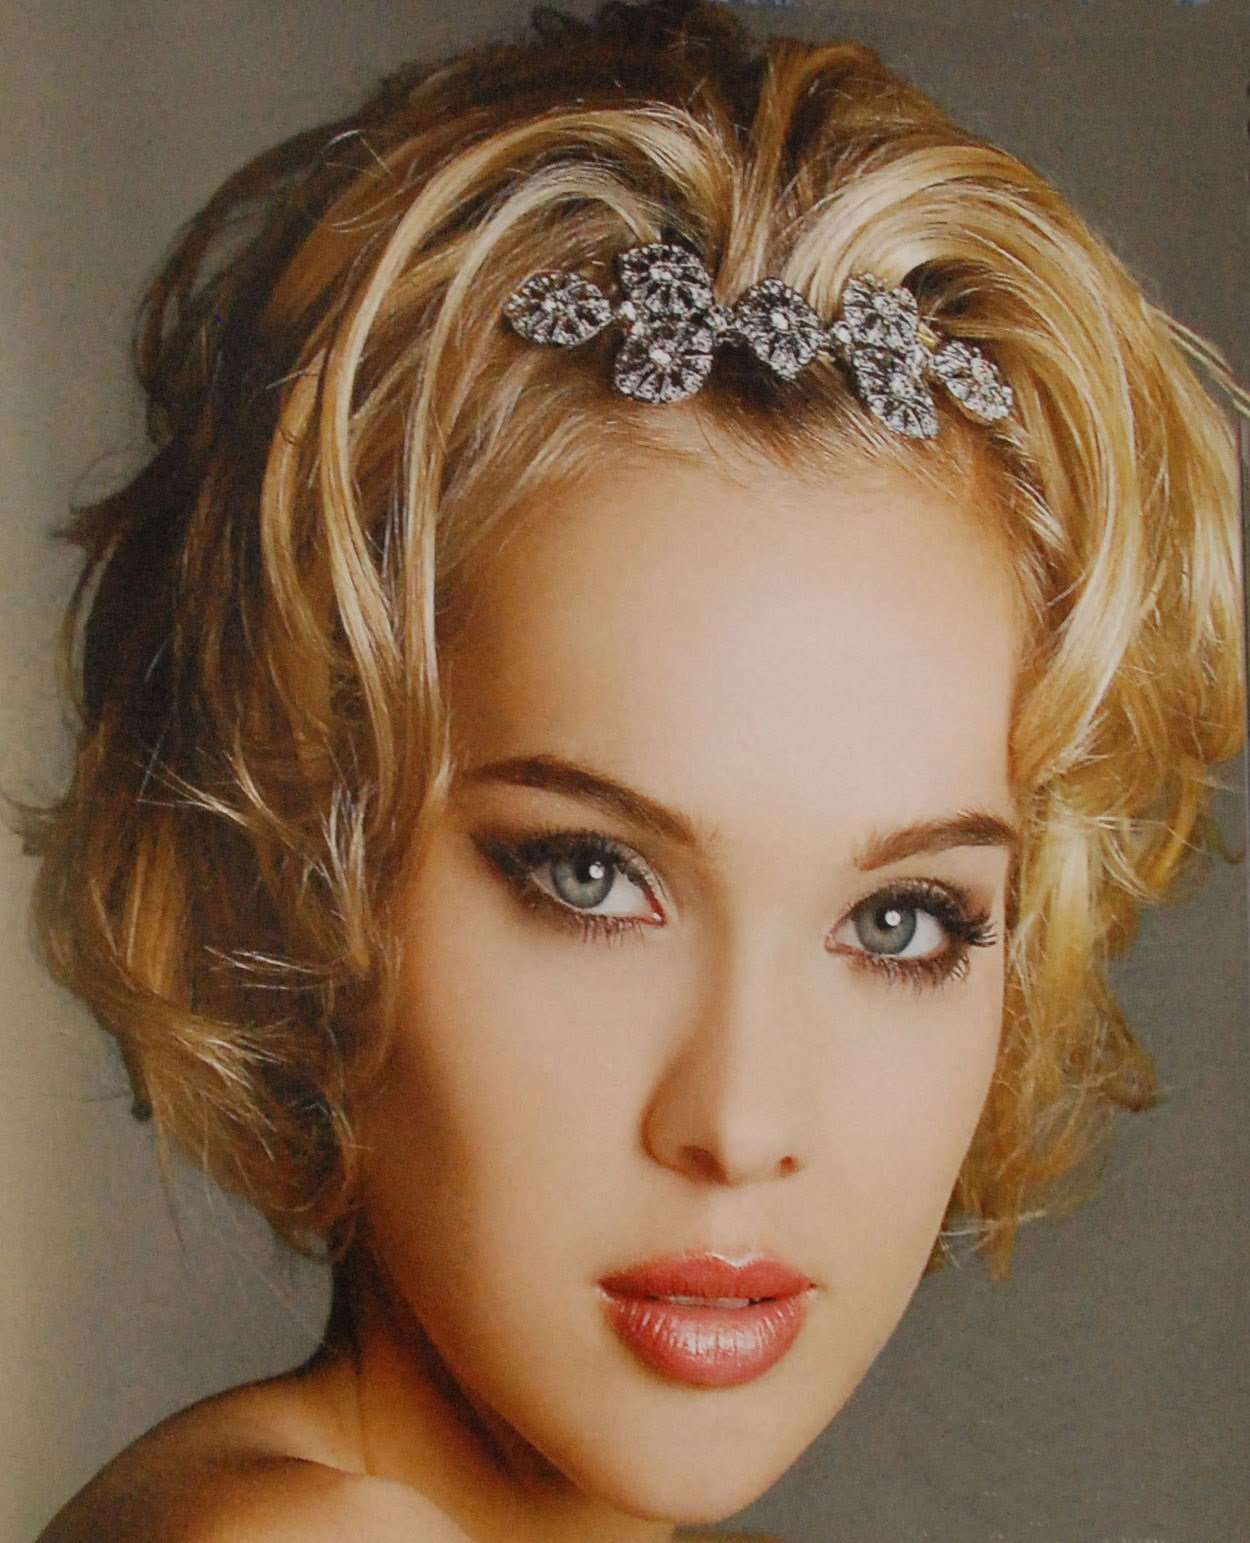 New China Hairstyles For Girls French Fashions Ideas With Pictures